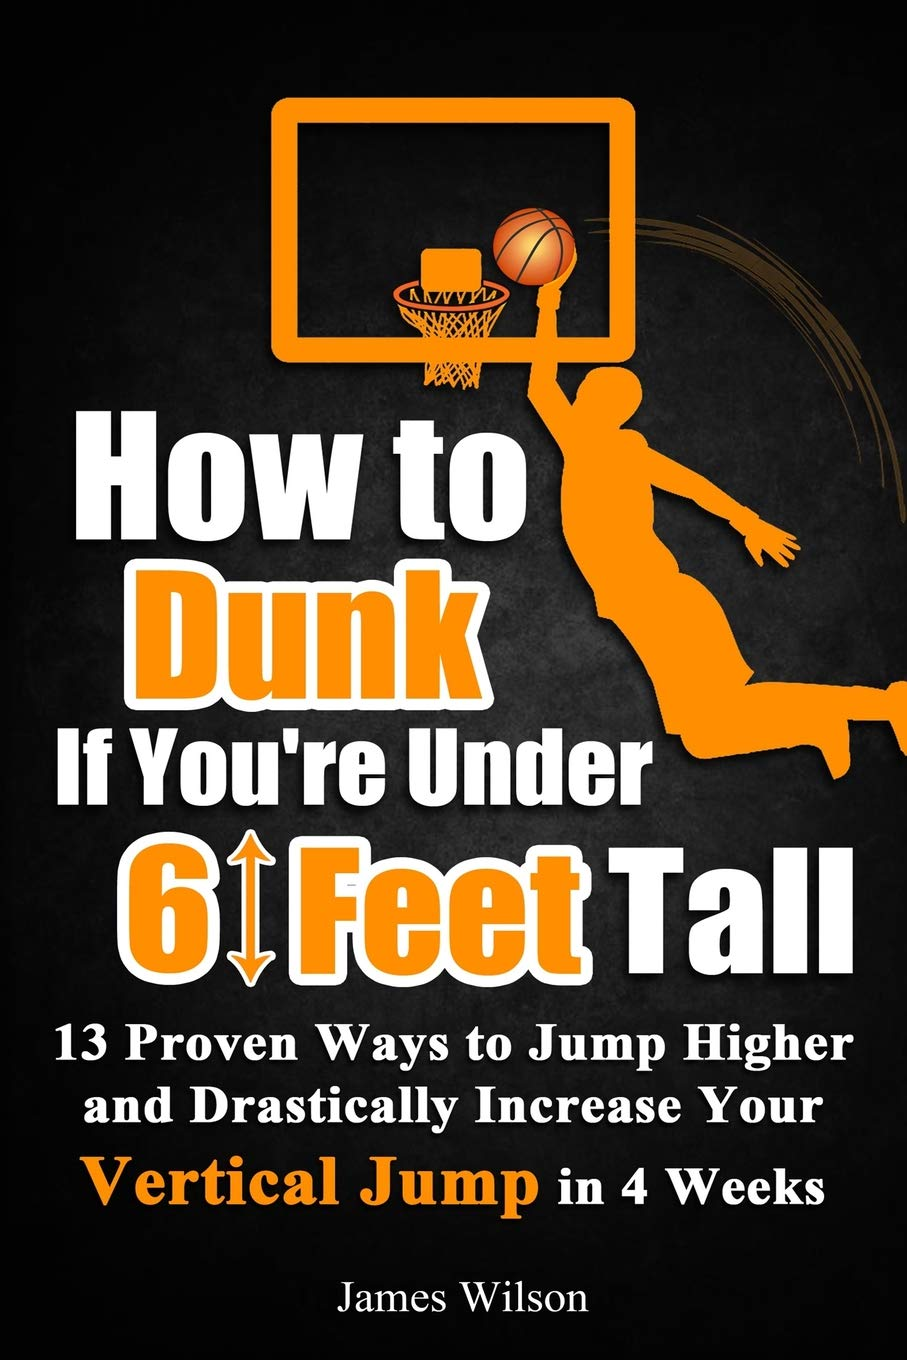 Image OfHow To Dunk If You're Under 6 Feet Tall: 13 Proven Ways To Jump Higher And Drastically Increase Your Vertical Jump In 4 Weeks